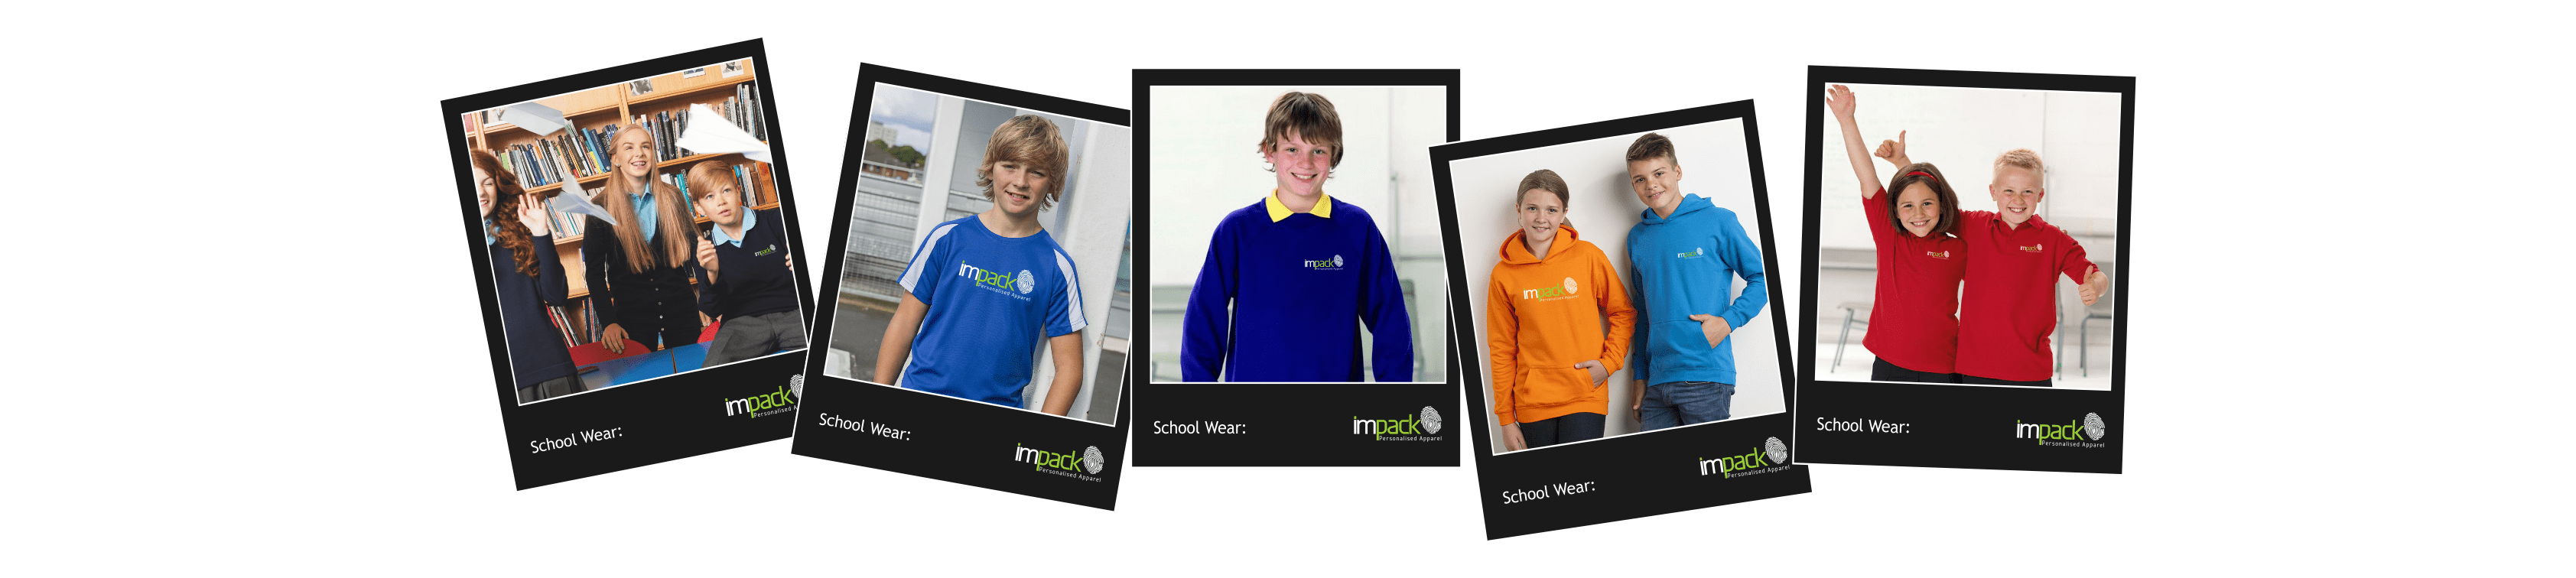 Schoolwear north east